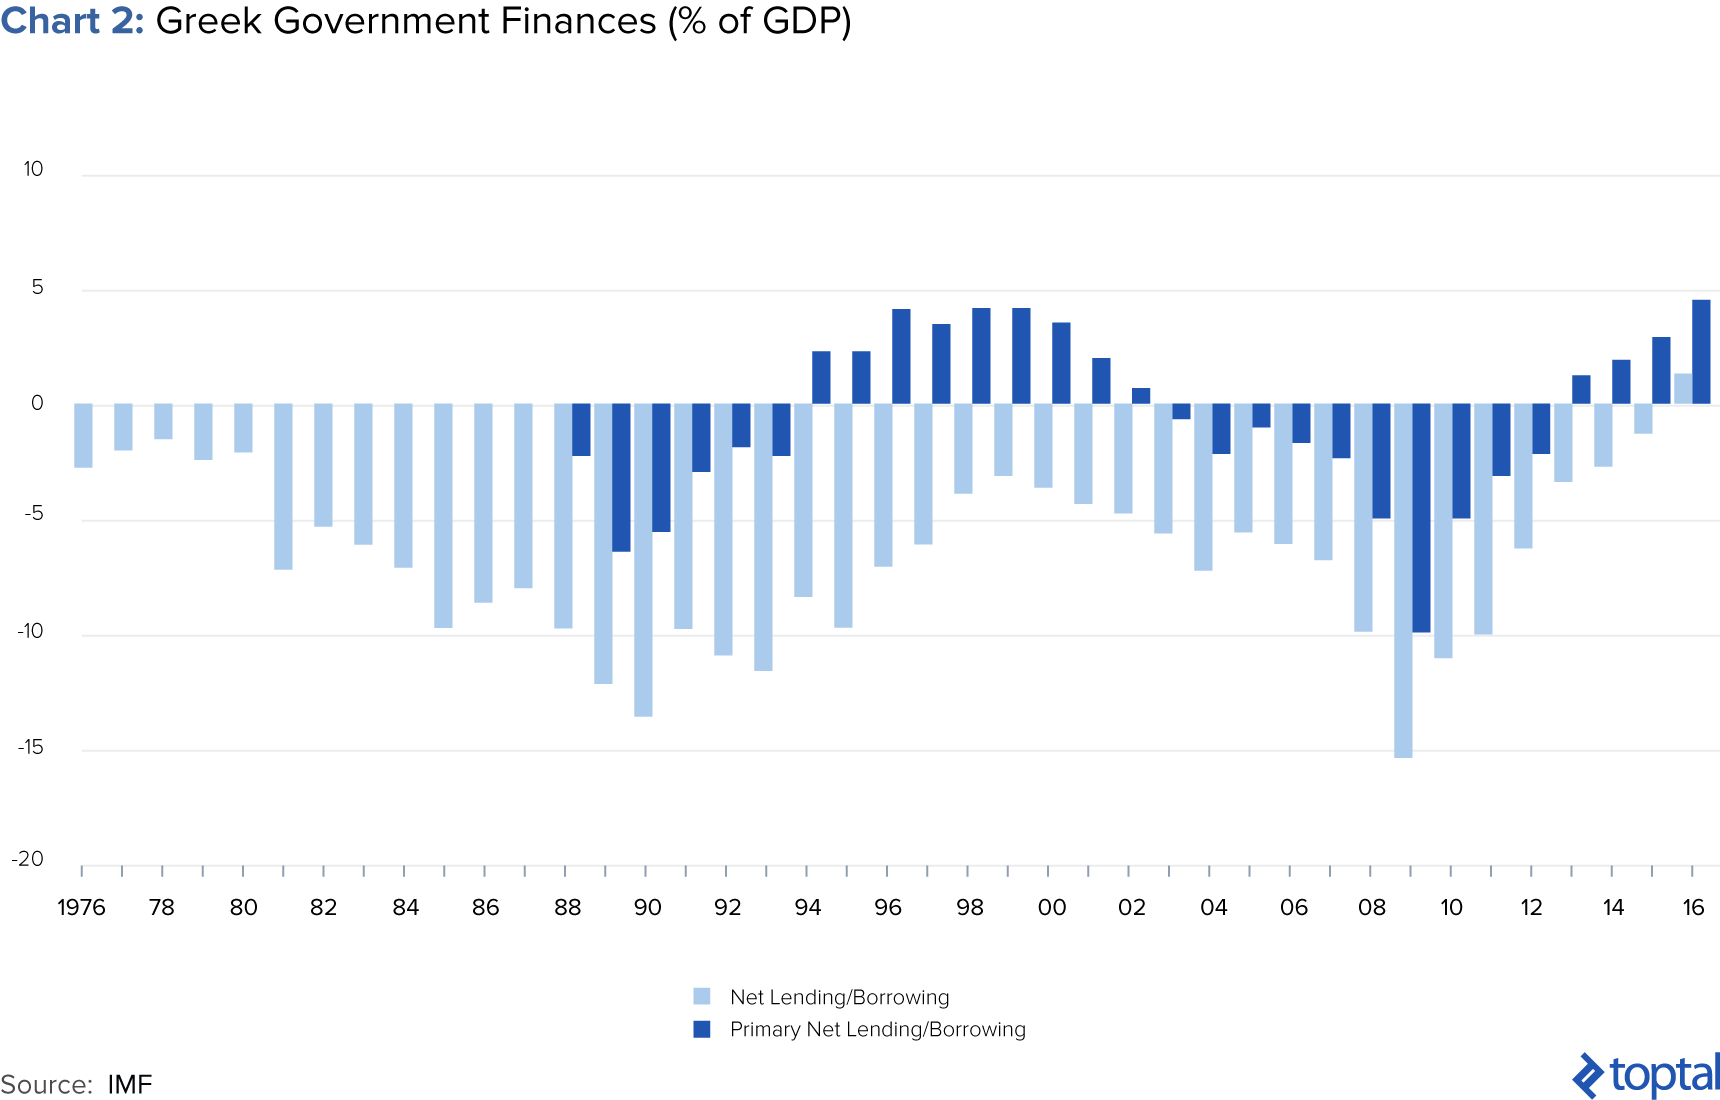 Chart 2: Greek Government Finances (% of GDP)